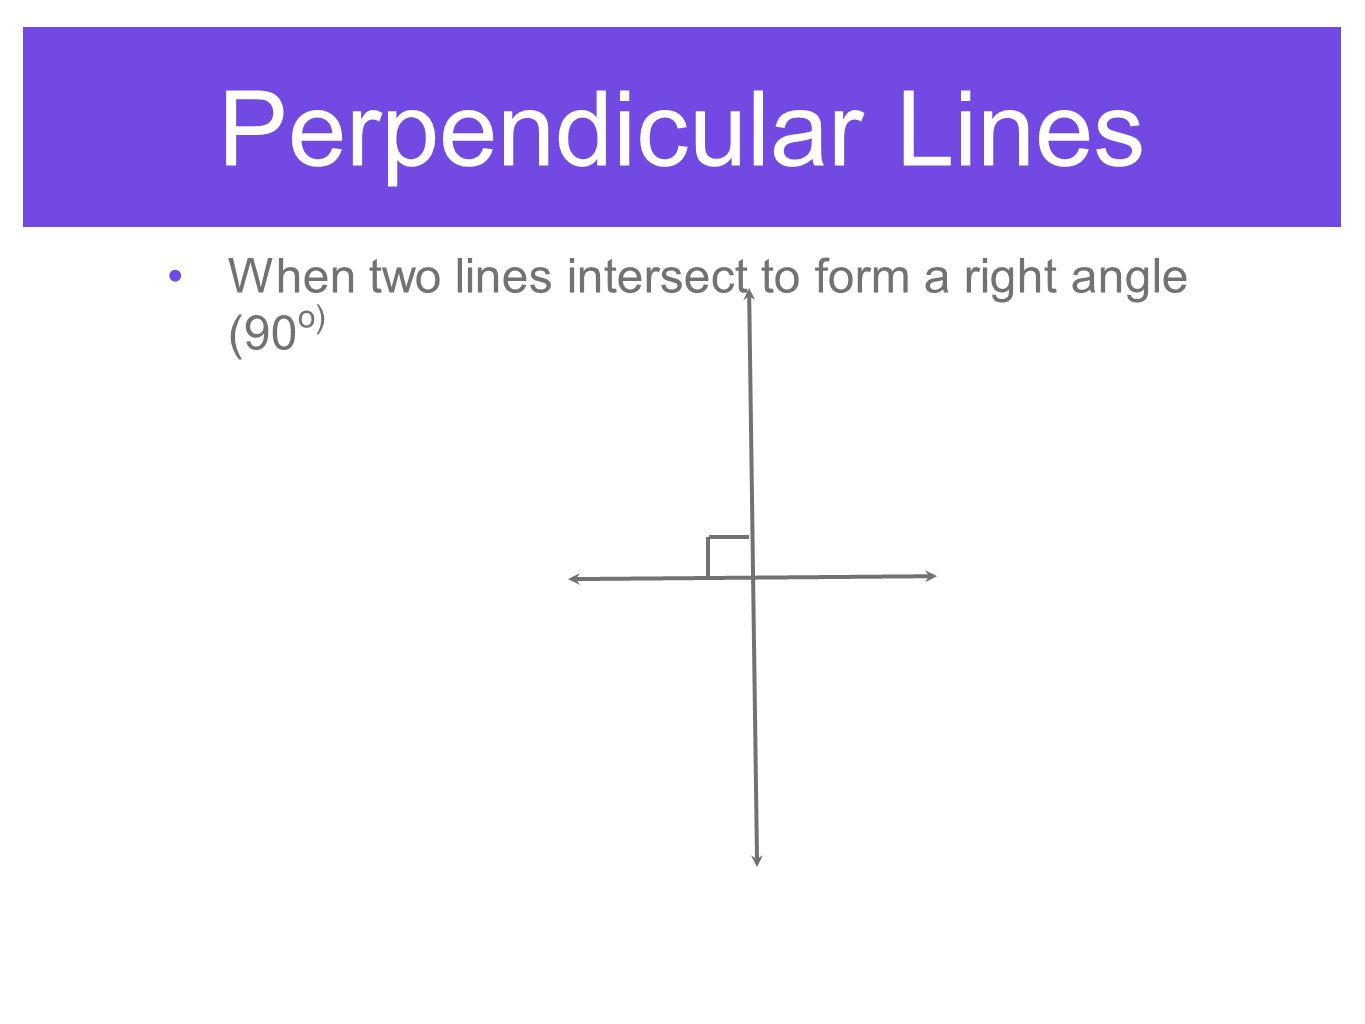 Perpendicular Lines When two lines intersect to form a right angle (90o)